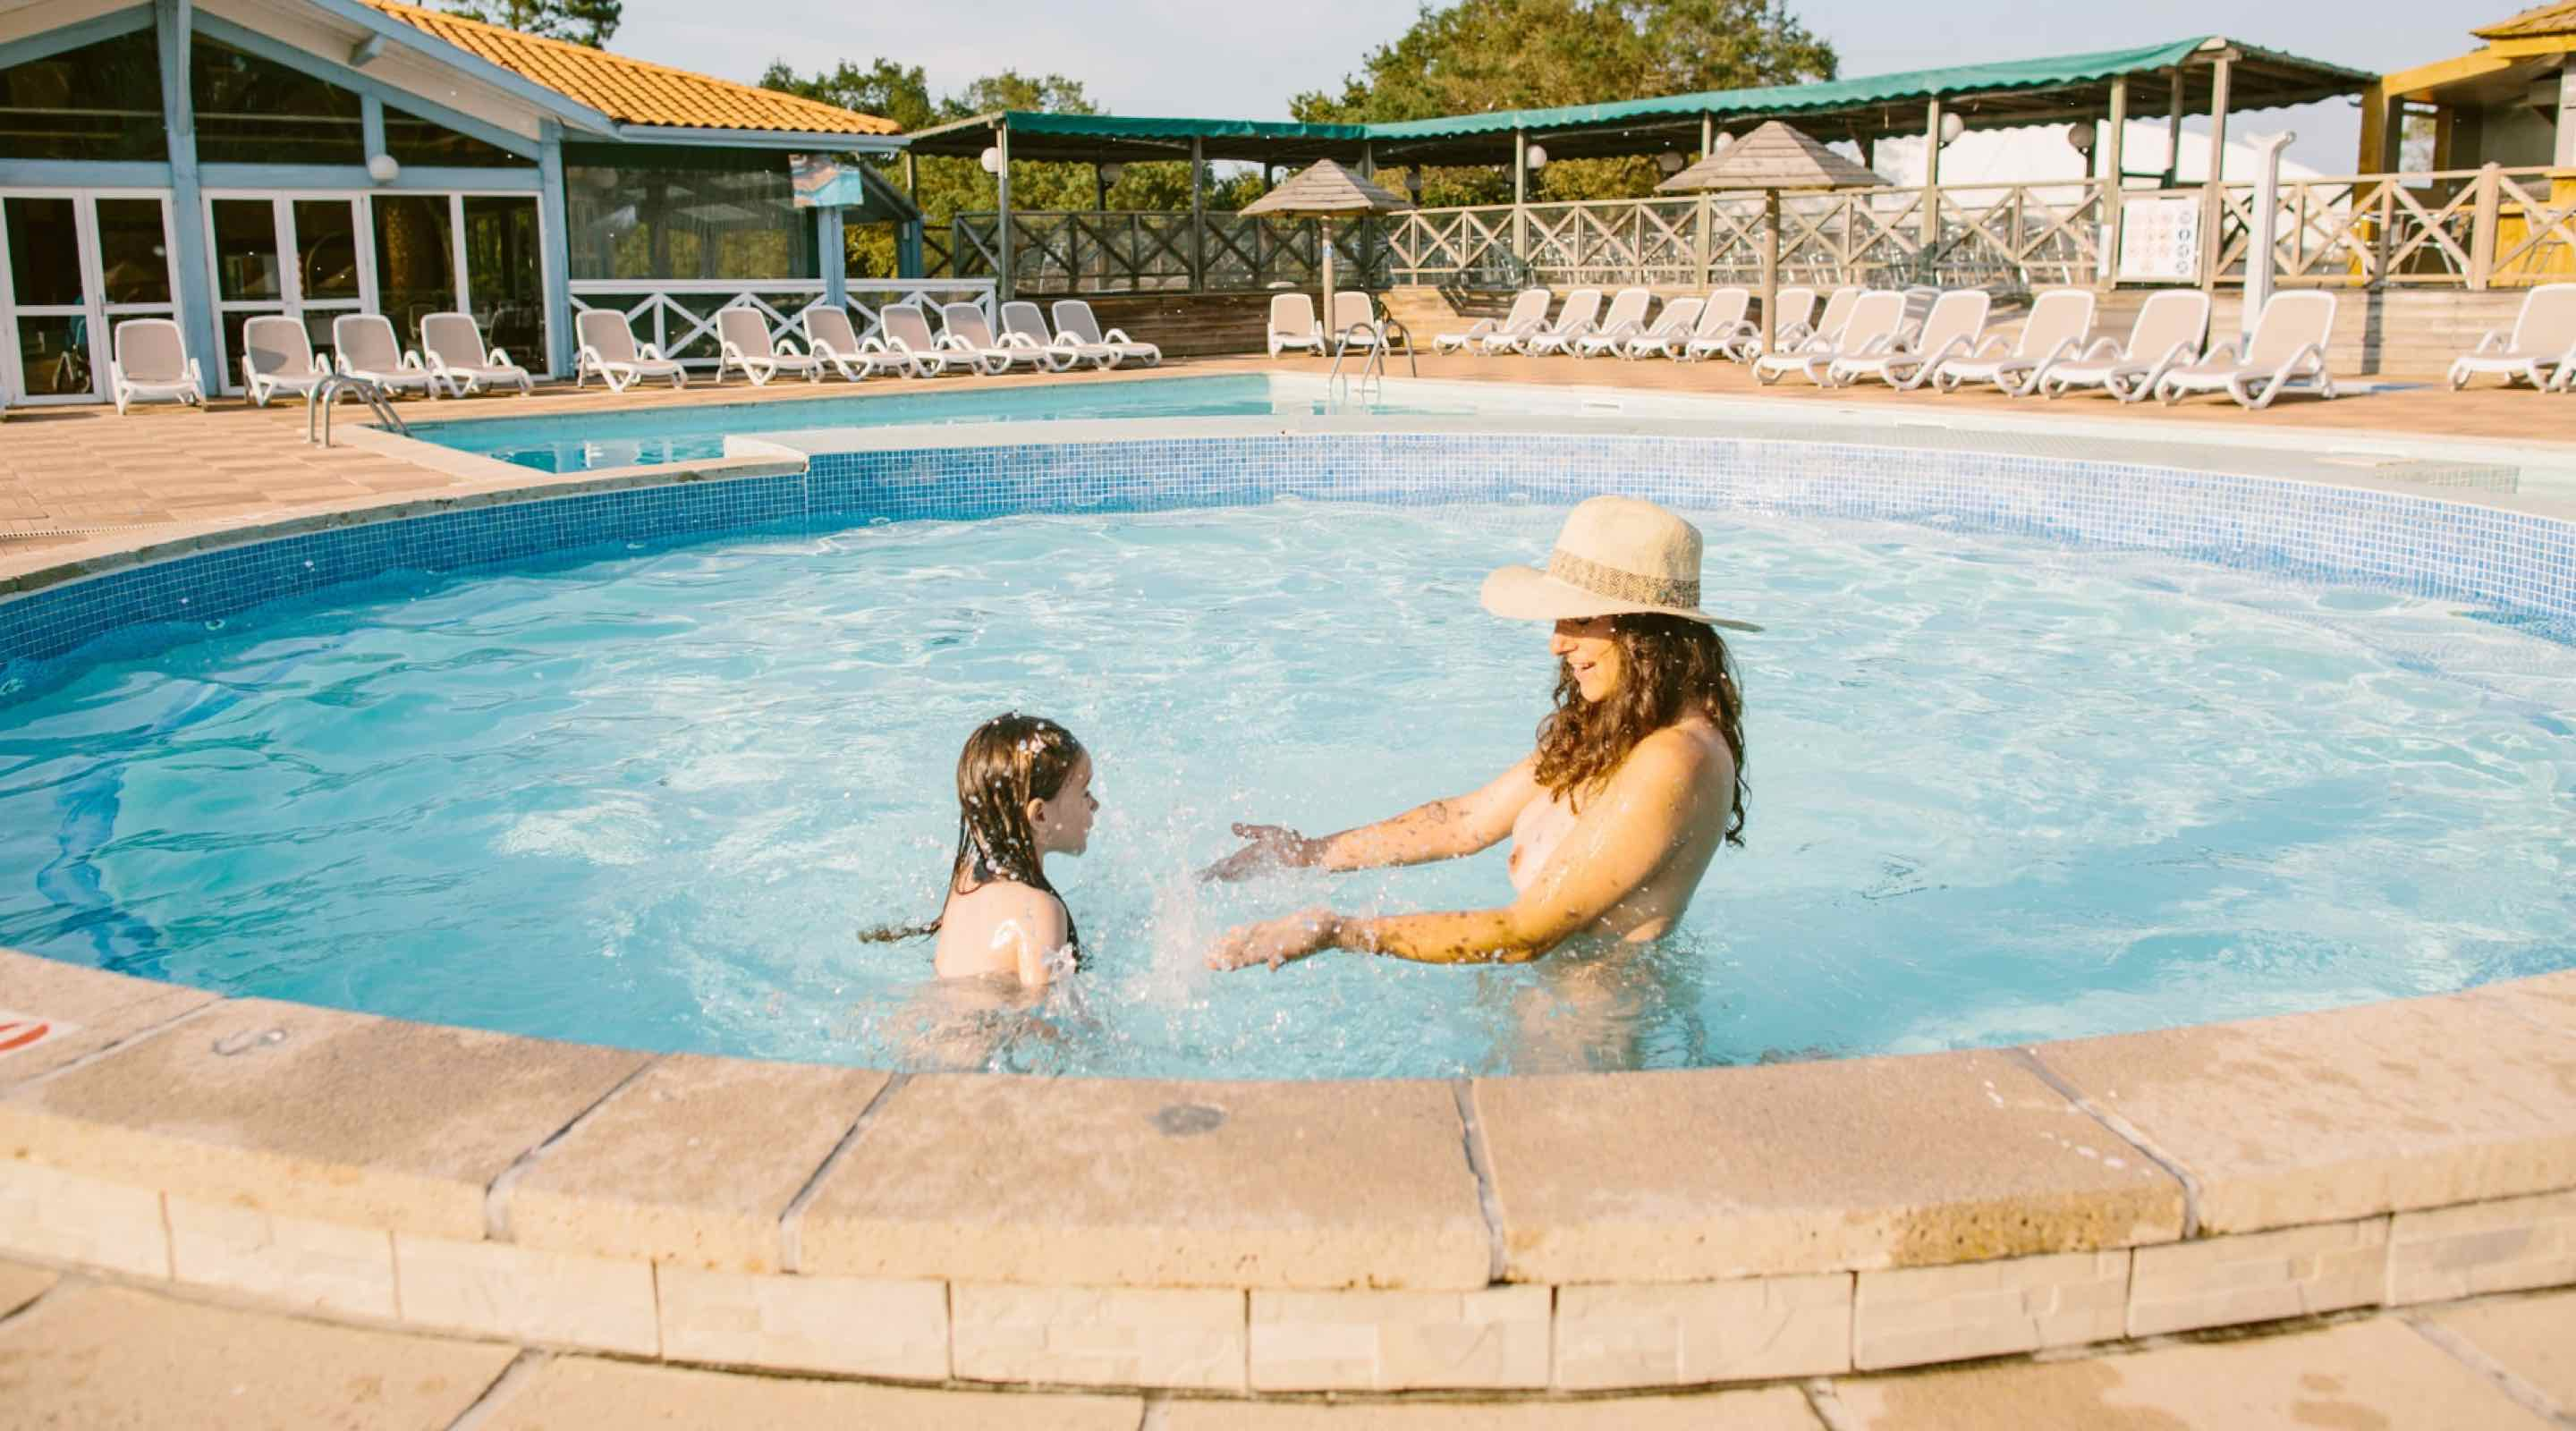 Nudist family at the pool